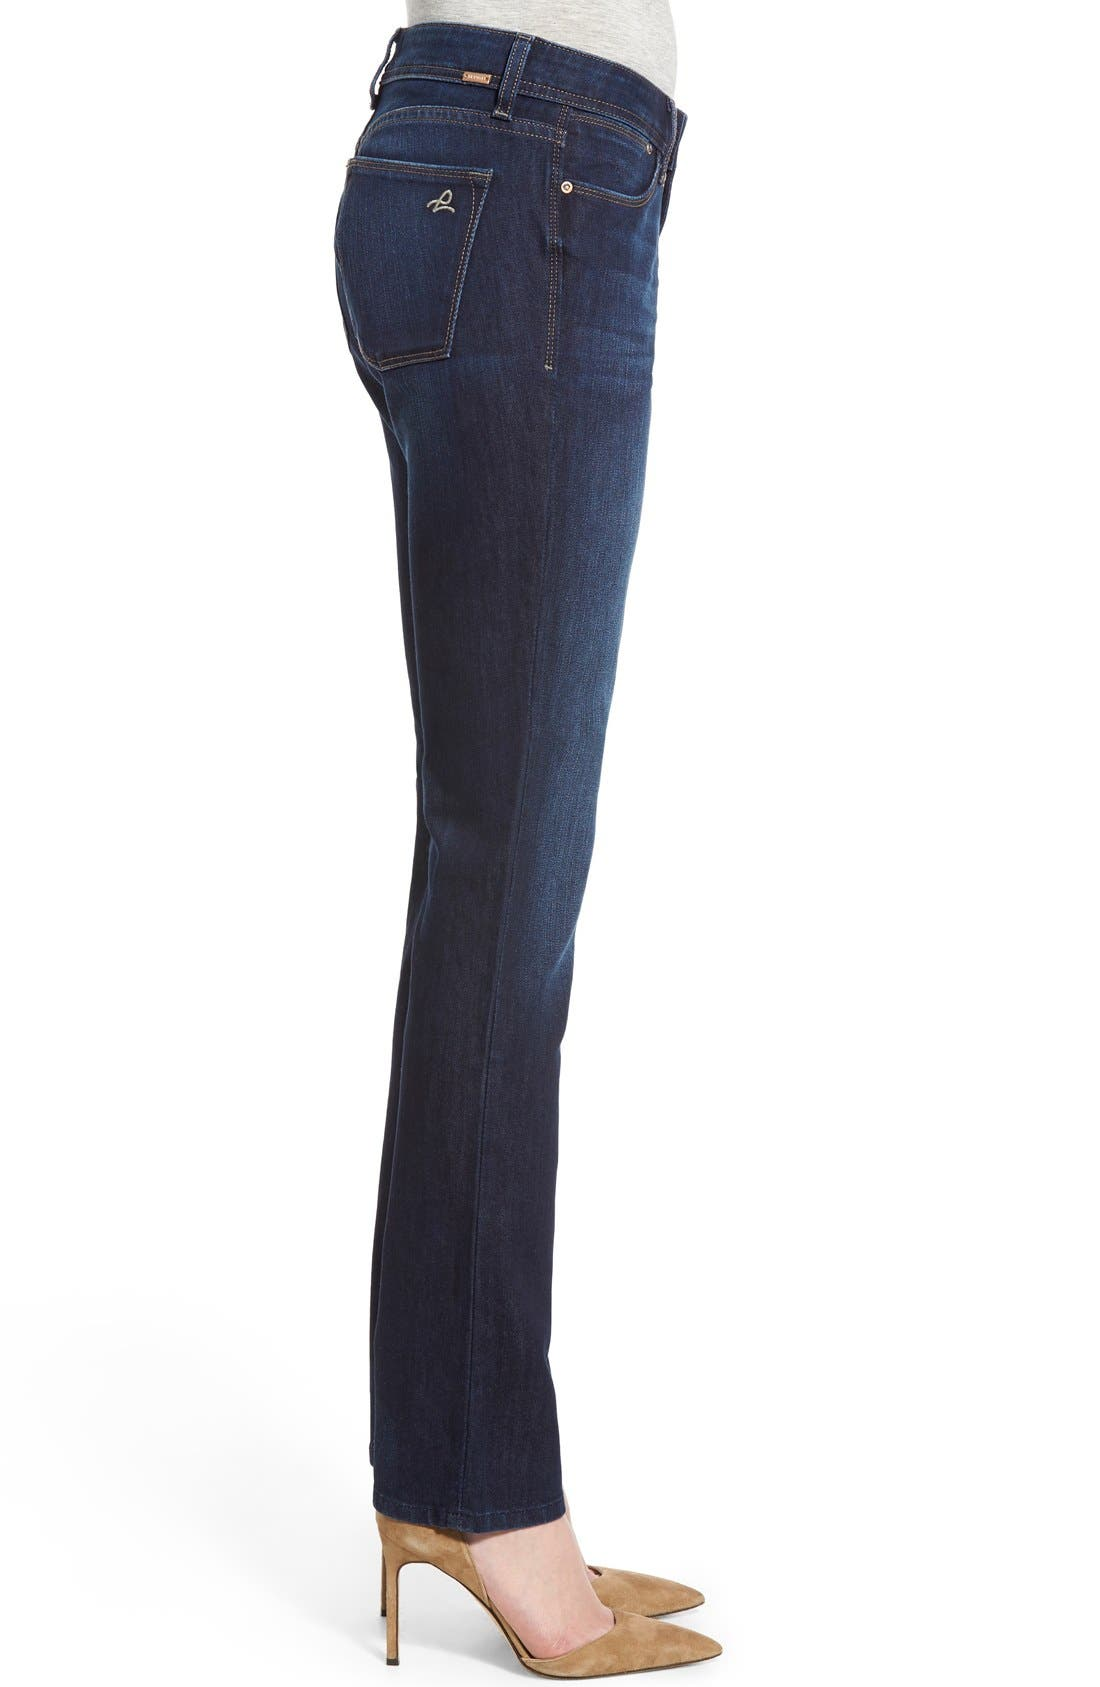 Alternate Image 3  - DL1961 'Coco' Curvy Straight Jeans (Solo)